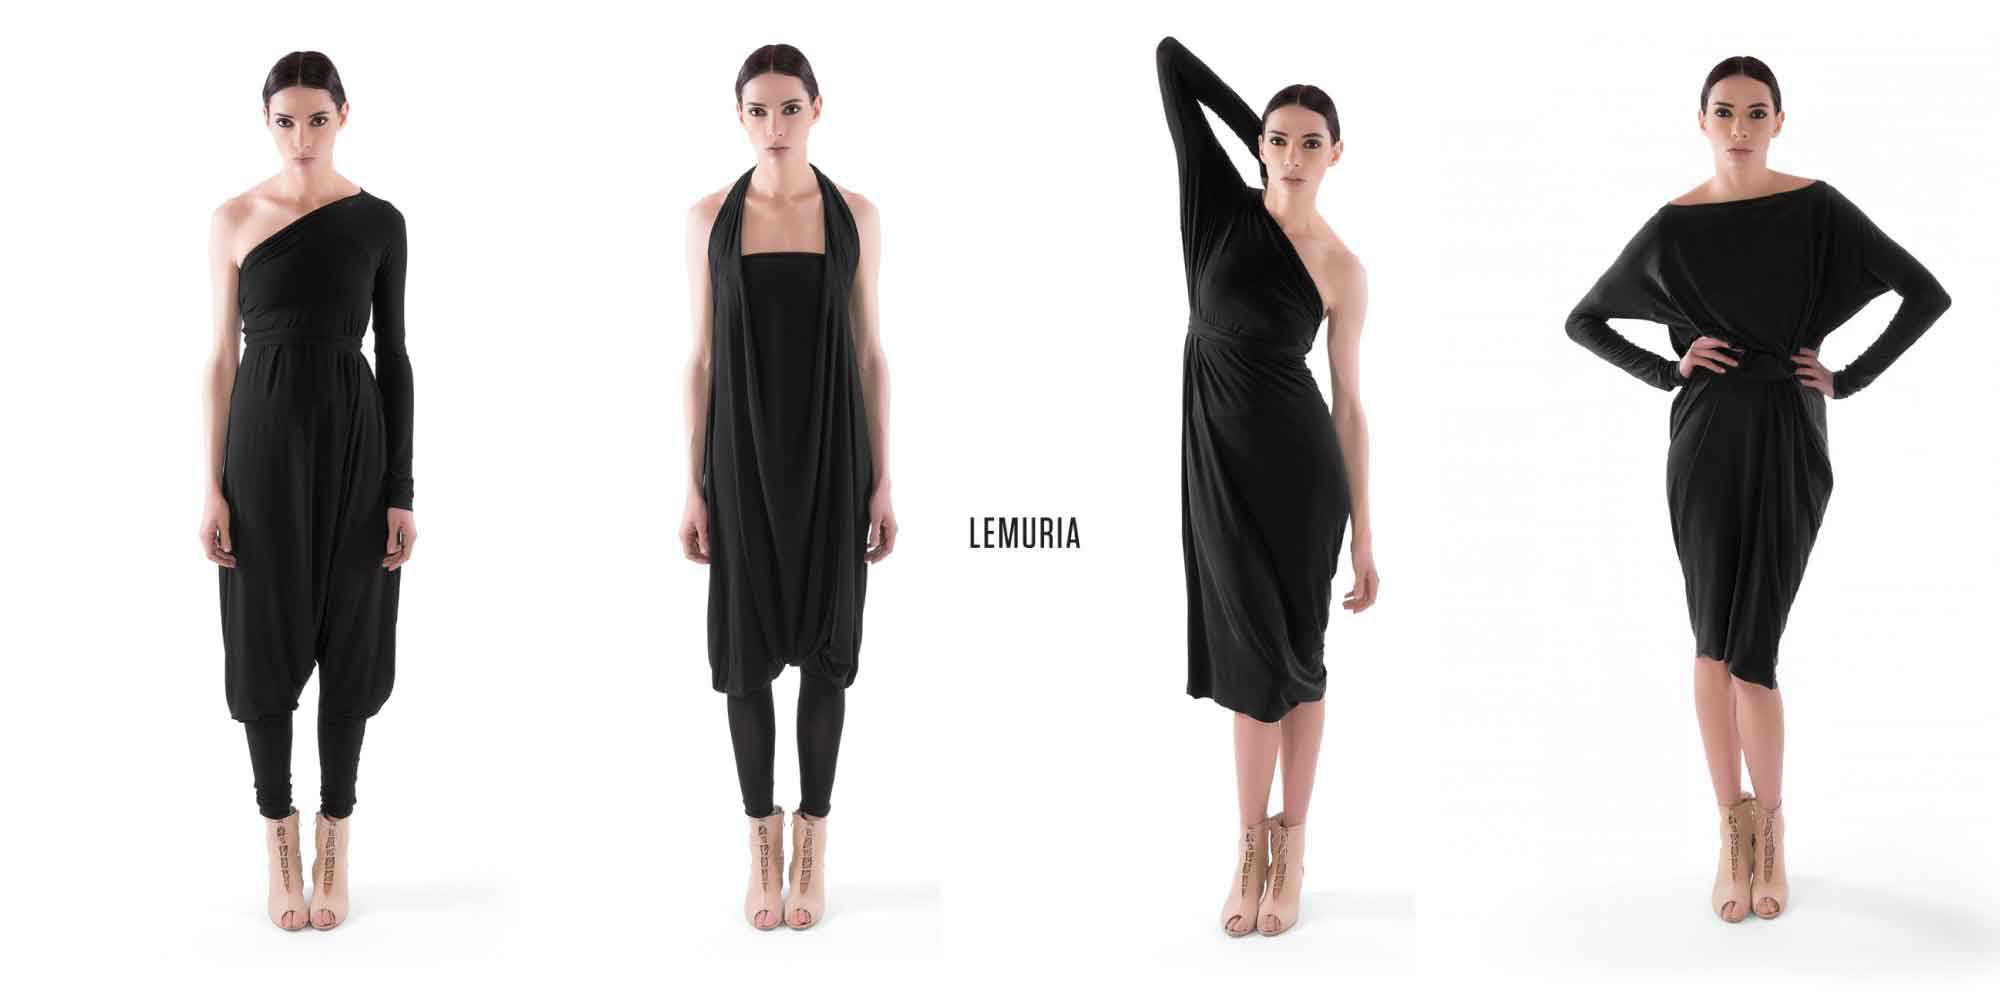 Lemuria @ Walkers.Style online women's fashion and clothing shop - Lemuria is crafted in Italy, the fabric quality is beautiful and the finish is excellent too.